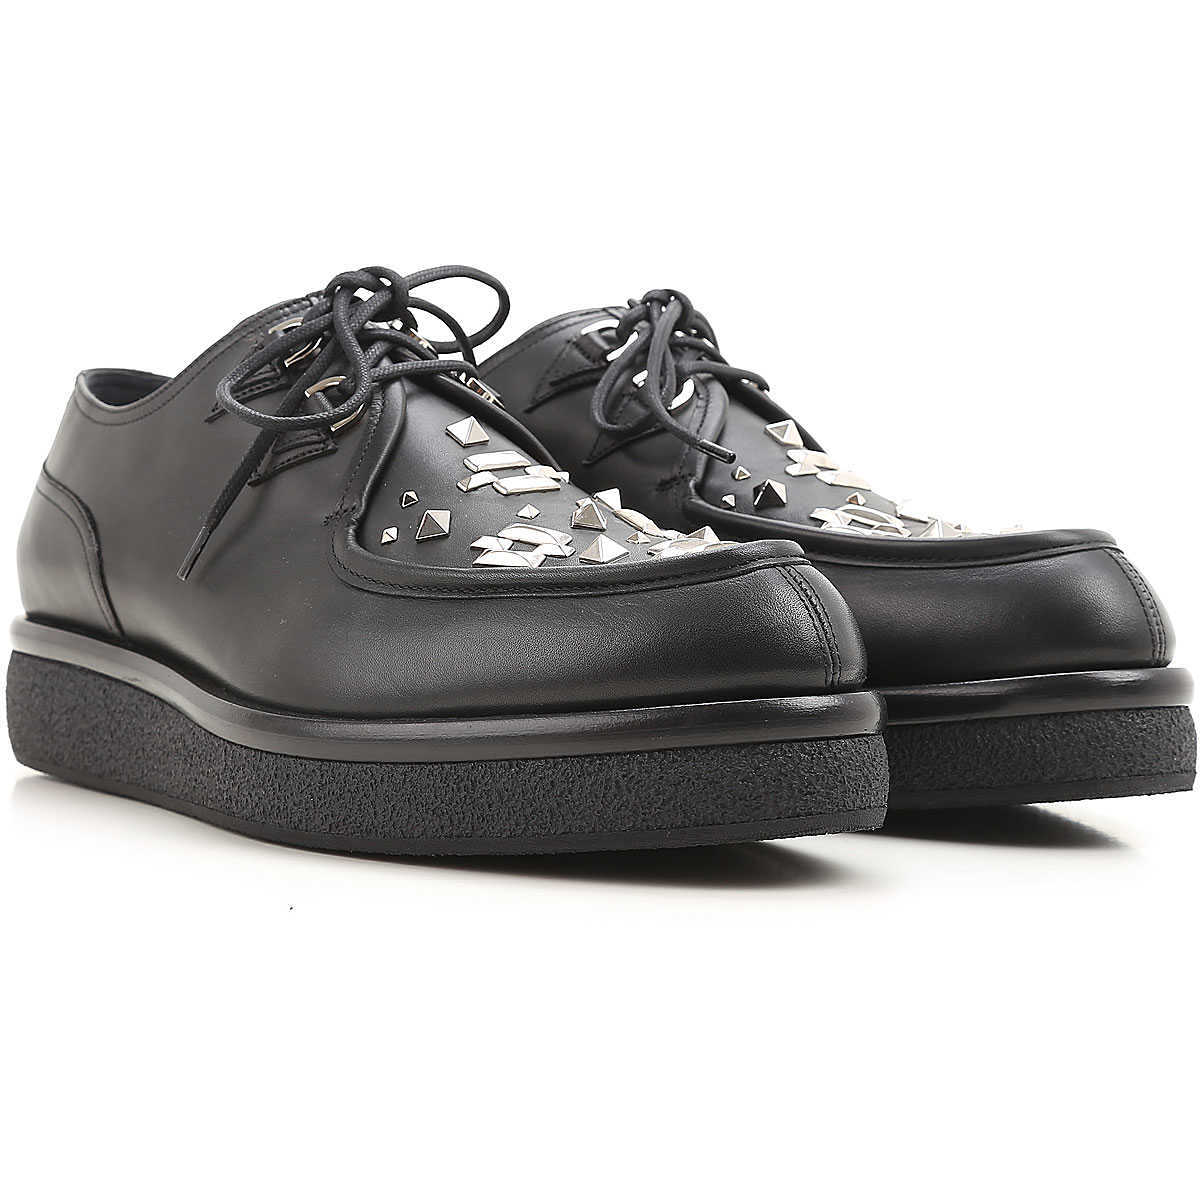 Valentino Garavani Lace Up Shoes for Men Oxfords Derbies and Brogues On Sale in Outlet DK - GOOFASH - Mens FORMAL SHOES